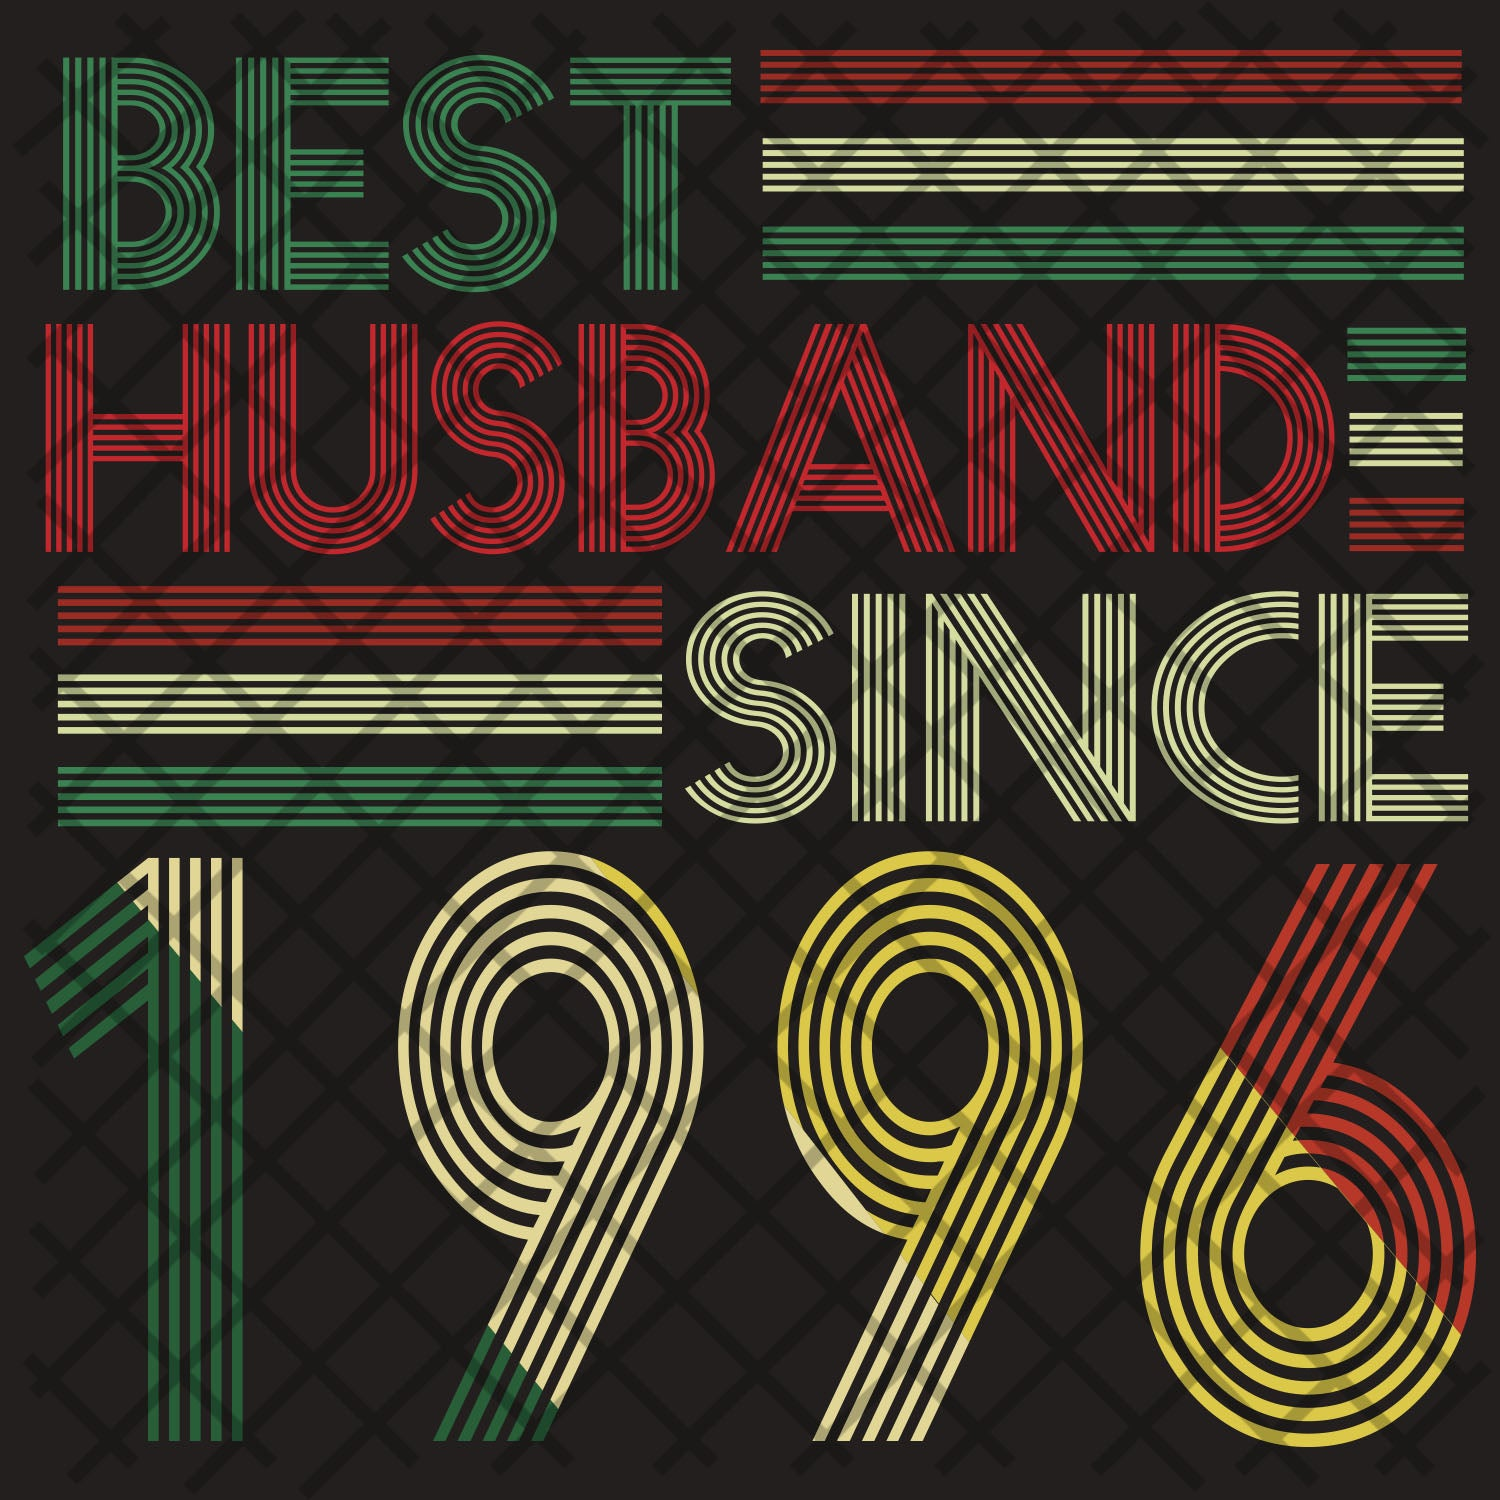 Best husband since 1996, husband svg, husband gift, husband shirt, love husband, best husband ever,family svg, family shirt,family gift,trending svg, Files For Silhouette, Files For Cricut, SVG, DXF, EPS, PNG, Instant Download